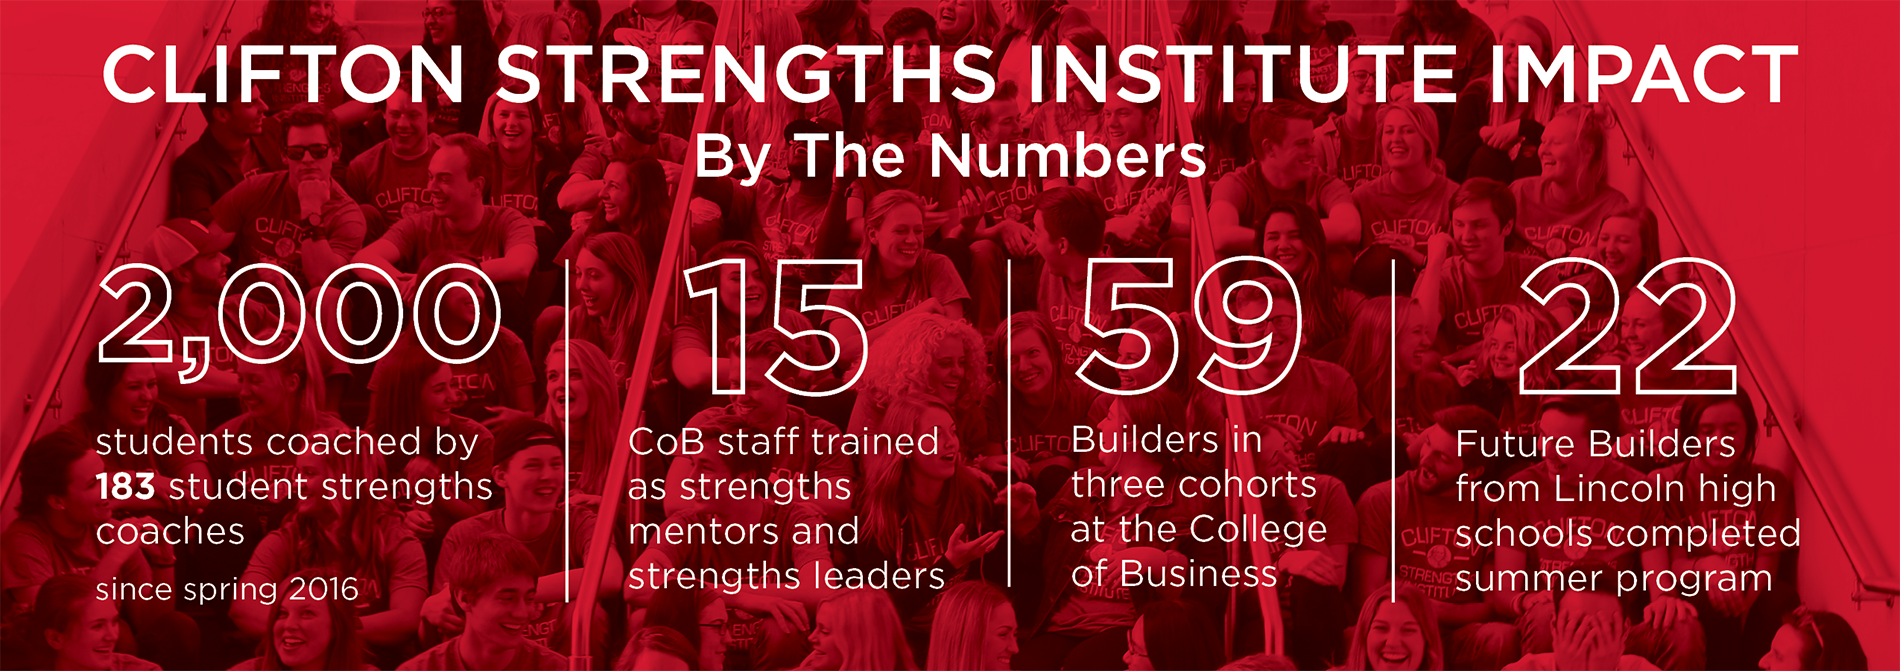 Clifton Strengths Institute Impact by the Numbers